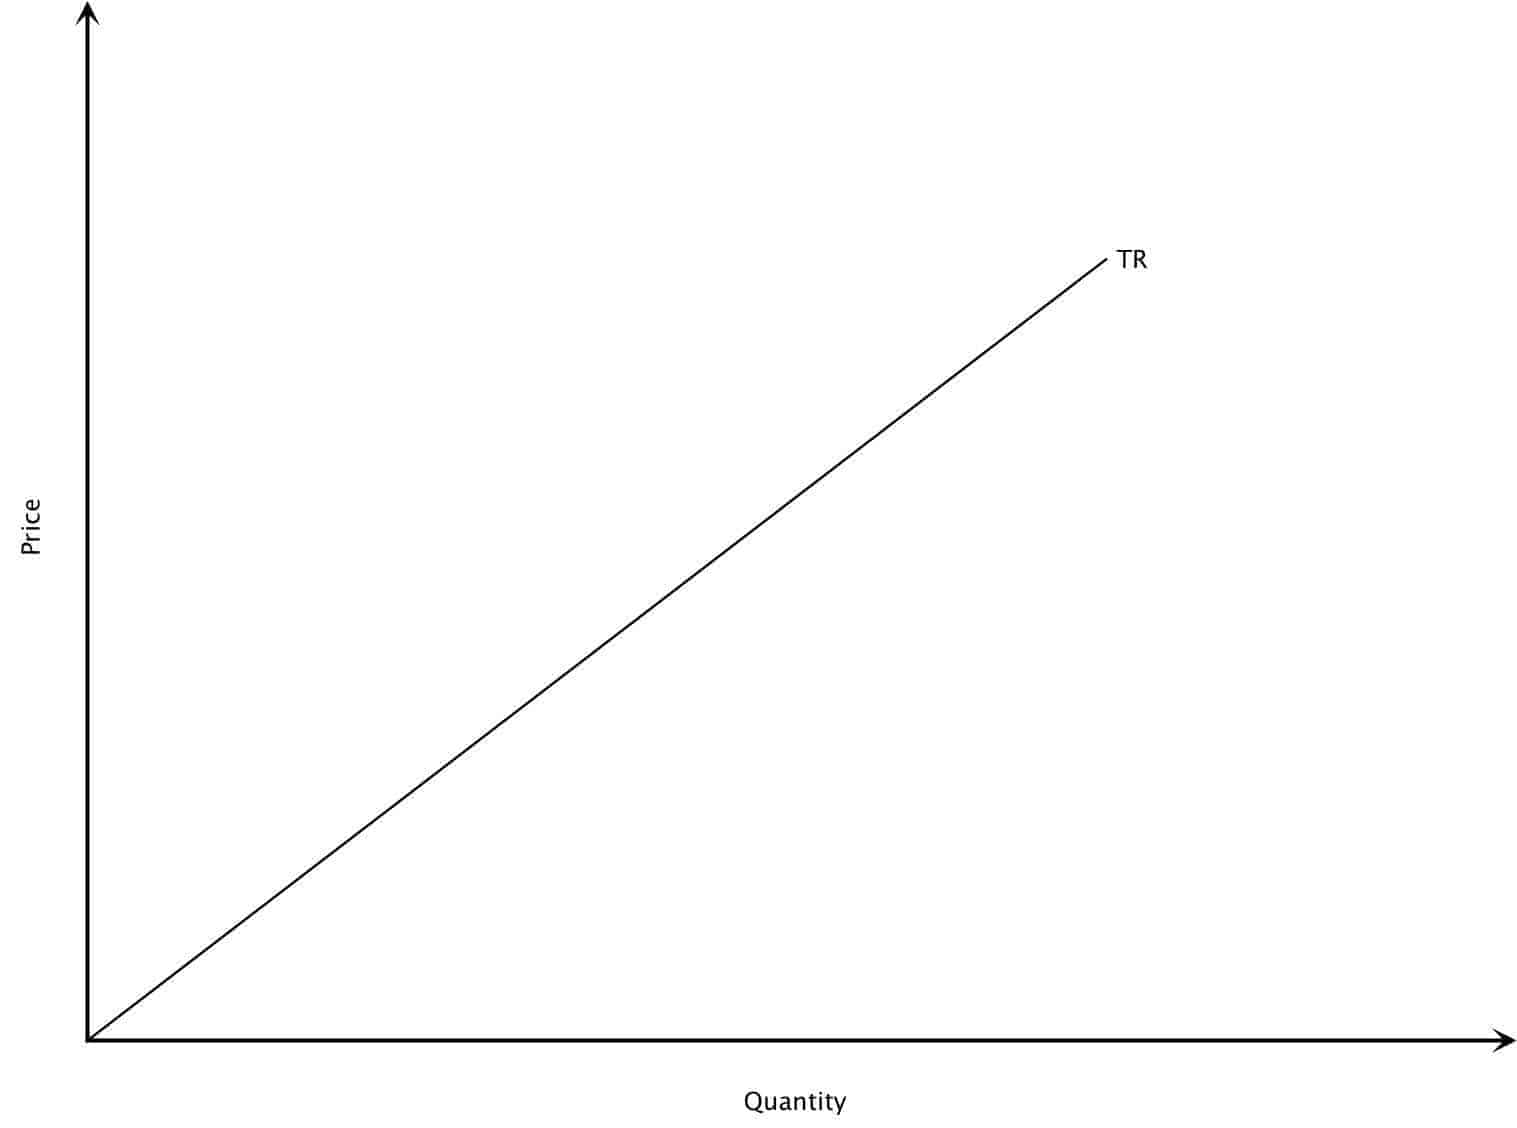 Total Revenue Curve for Perfect Competition